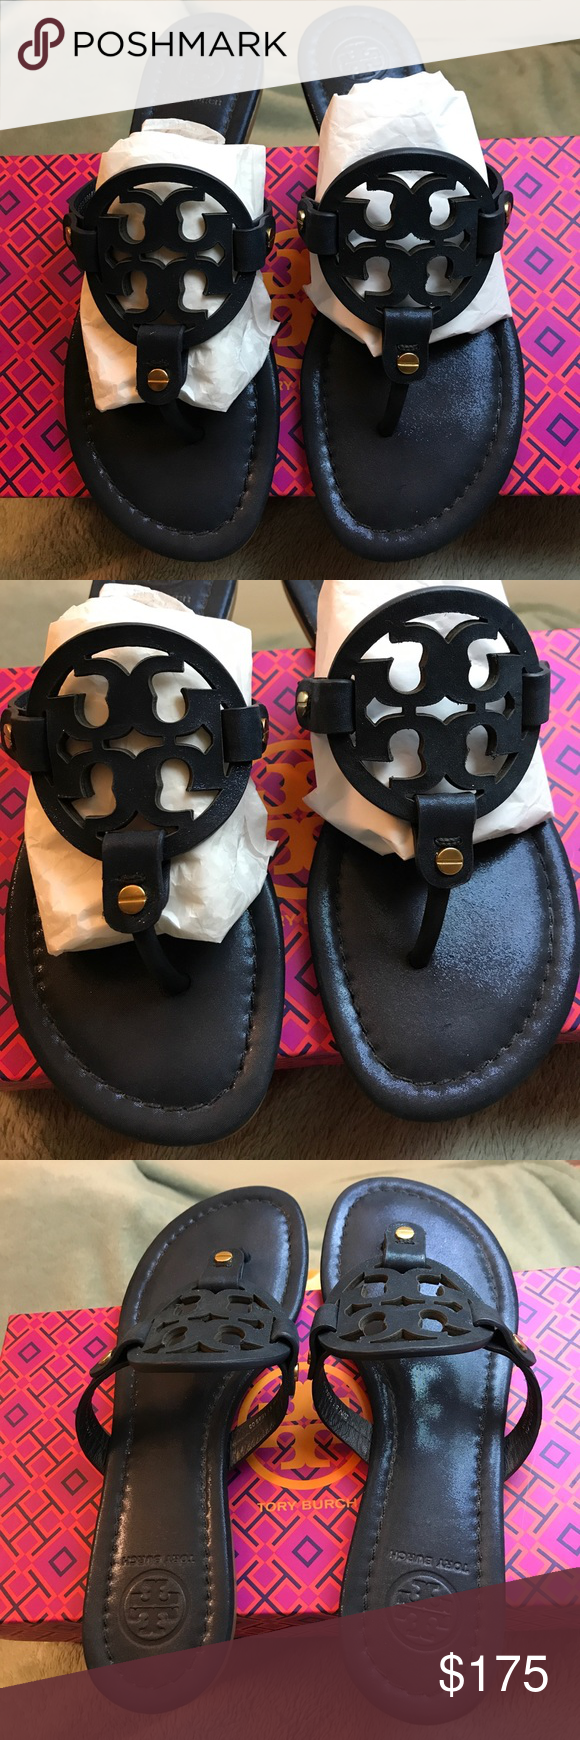 "09fe9e28443b6 Tory Burch ""Miller"" Flip Flop Sparkle Suede 💙 💯 Authentic worn once only  no flaws color Bright Navy Sparkle Suede...Out of Stock purchased at  nordstrom ..."